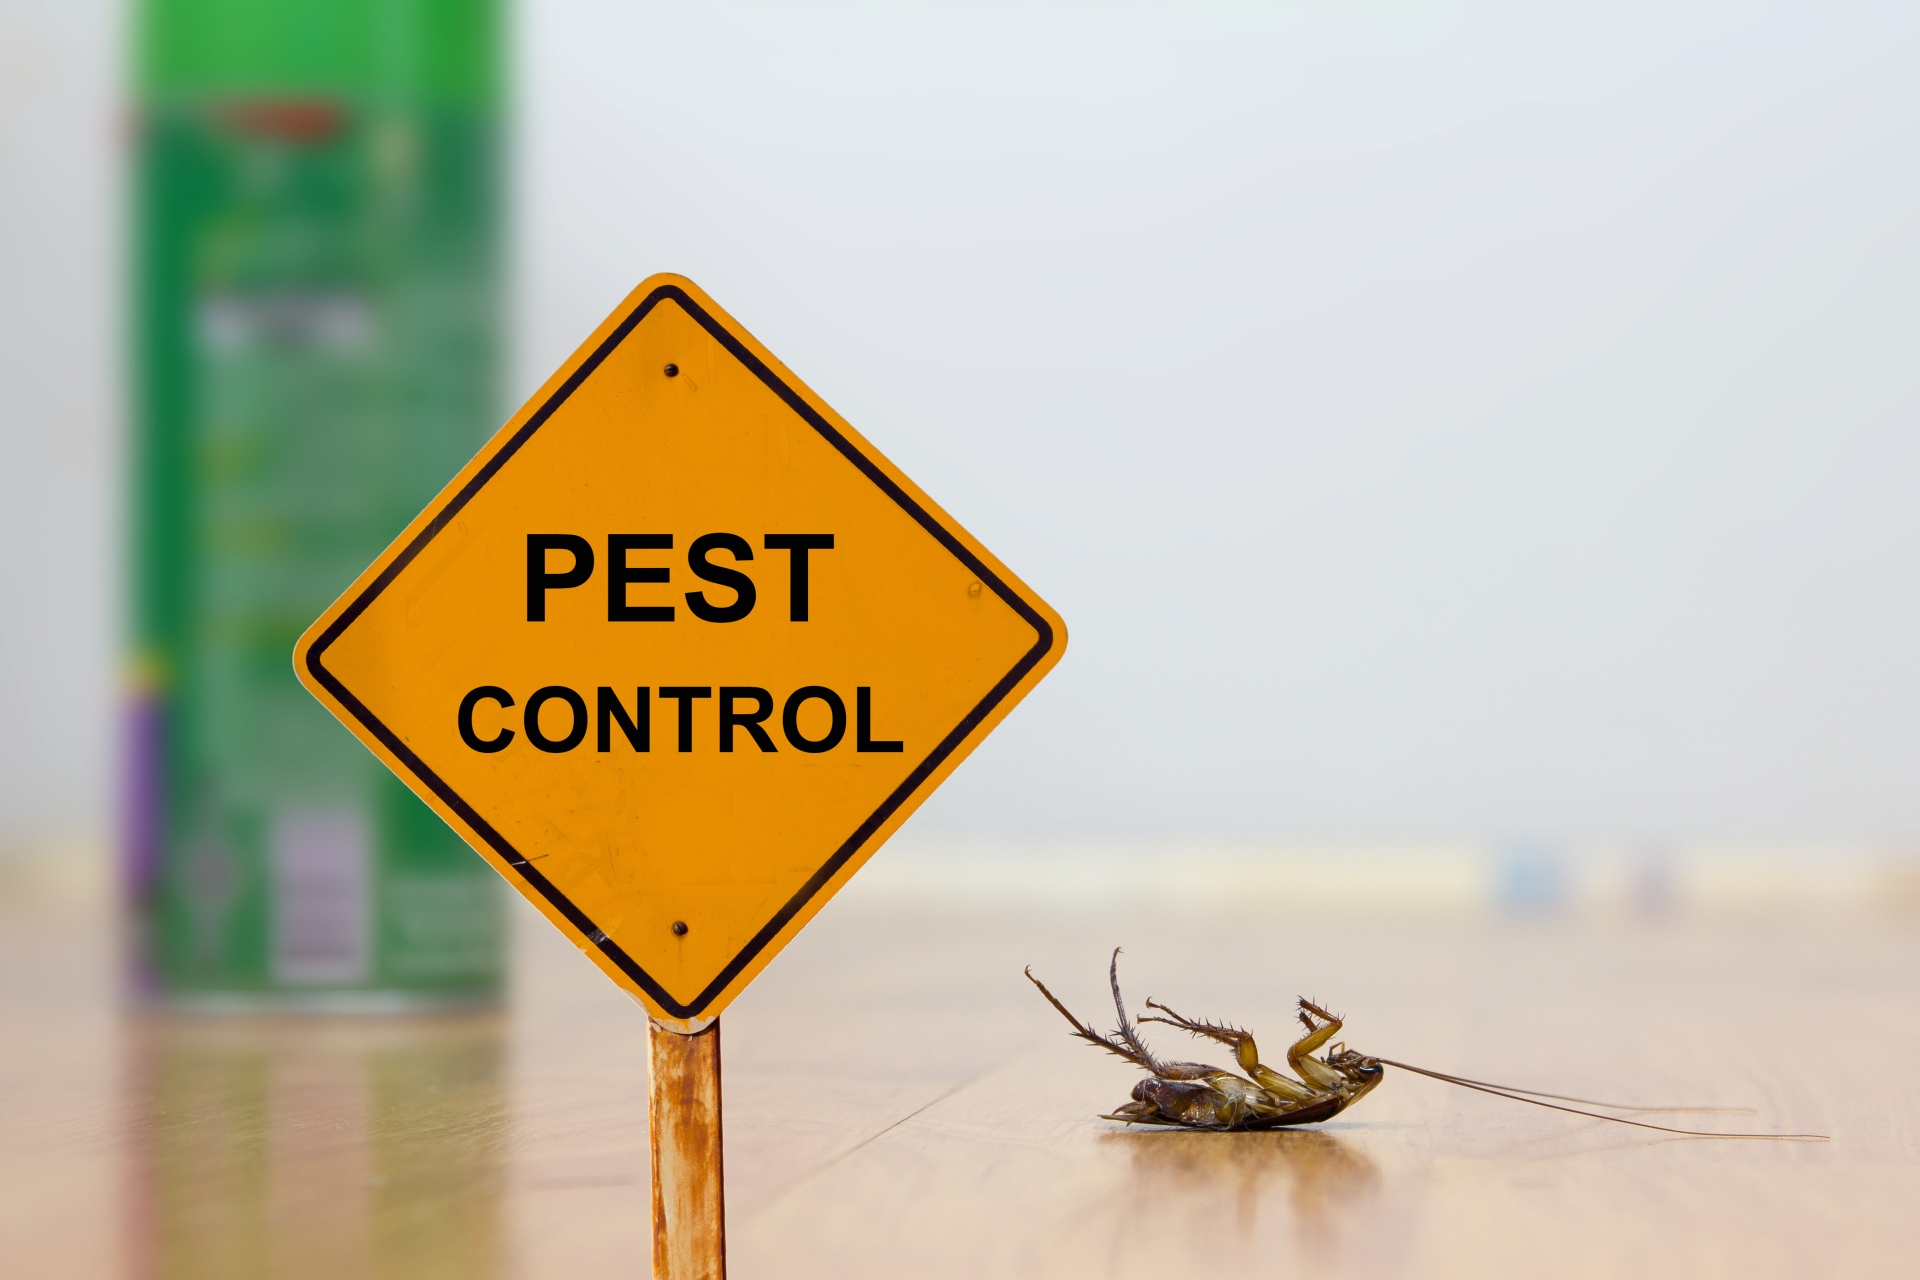 24 Hour Pest Control, Pest Control in Esher, Claygate, KT10. Call Now 020 8166 9746